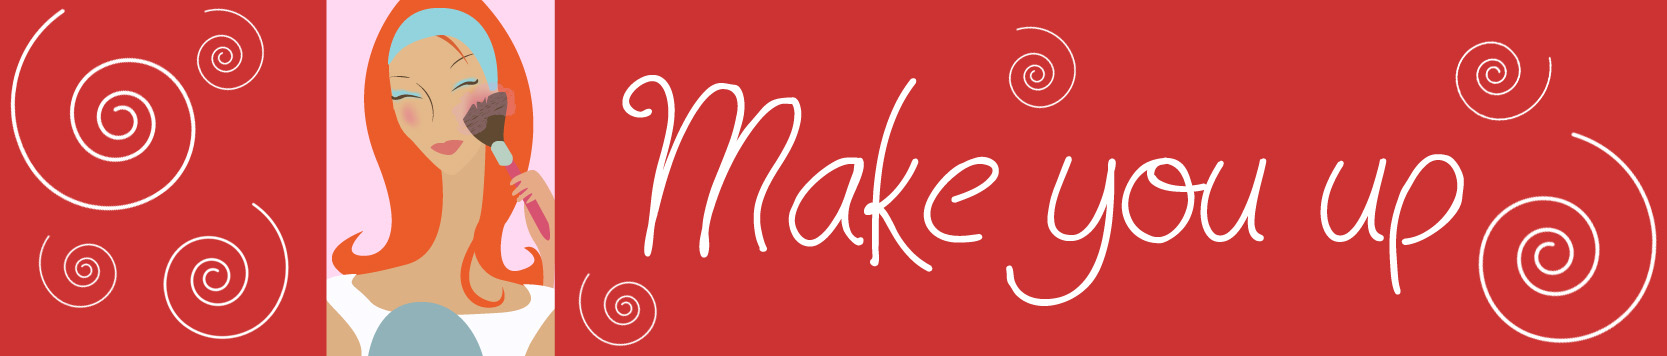 make you up logo